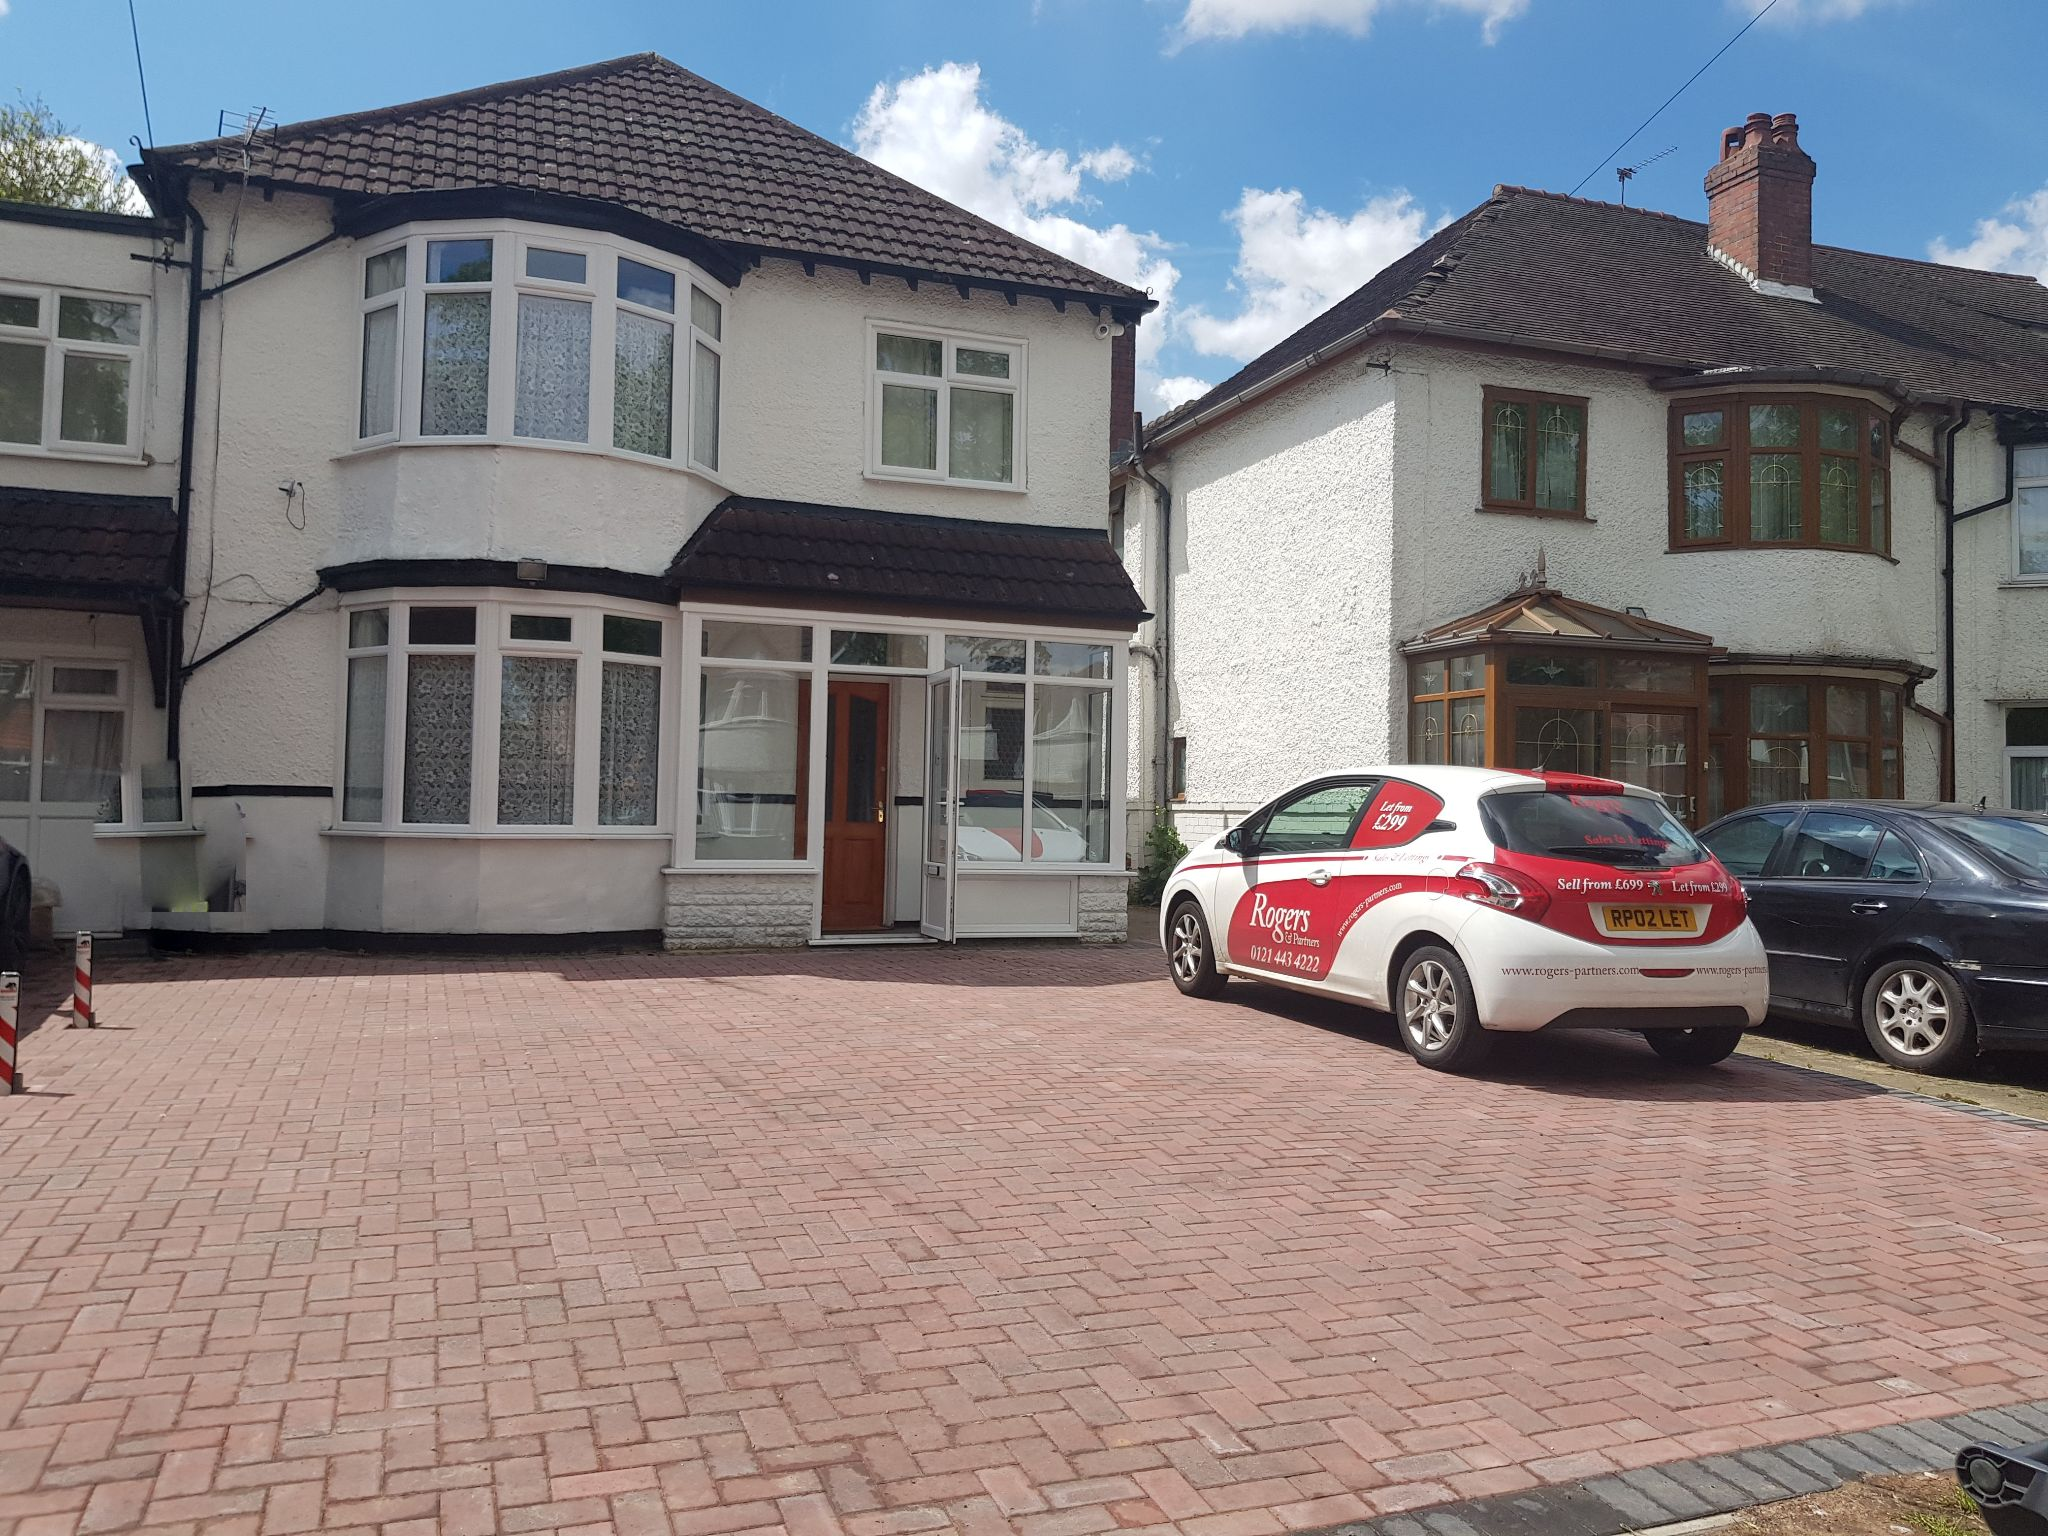 1 Bed Shared House To Rent - Front